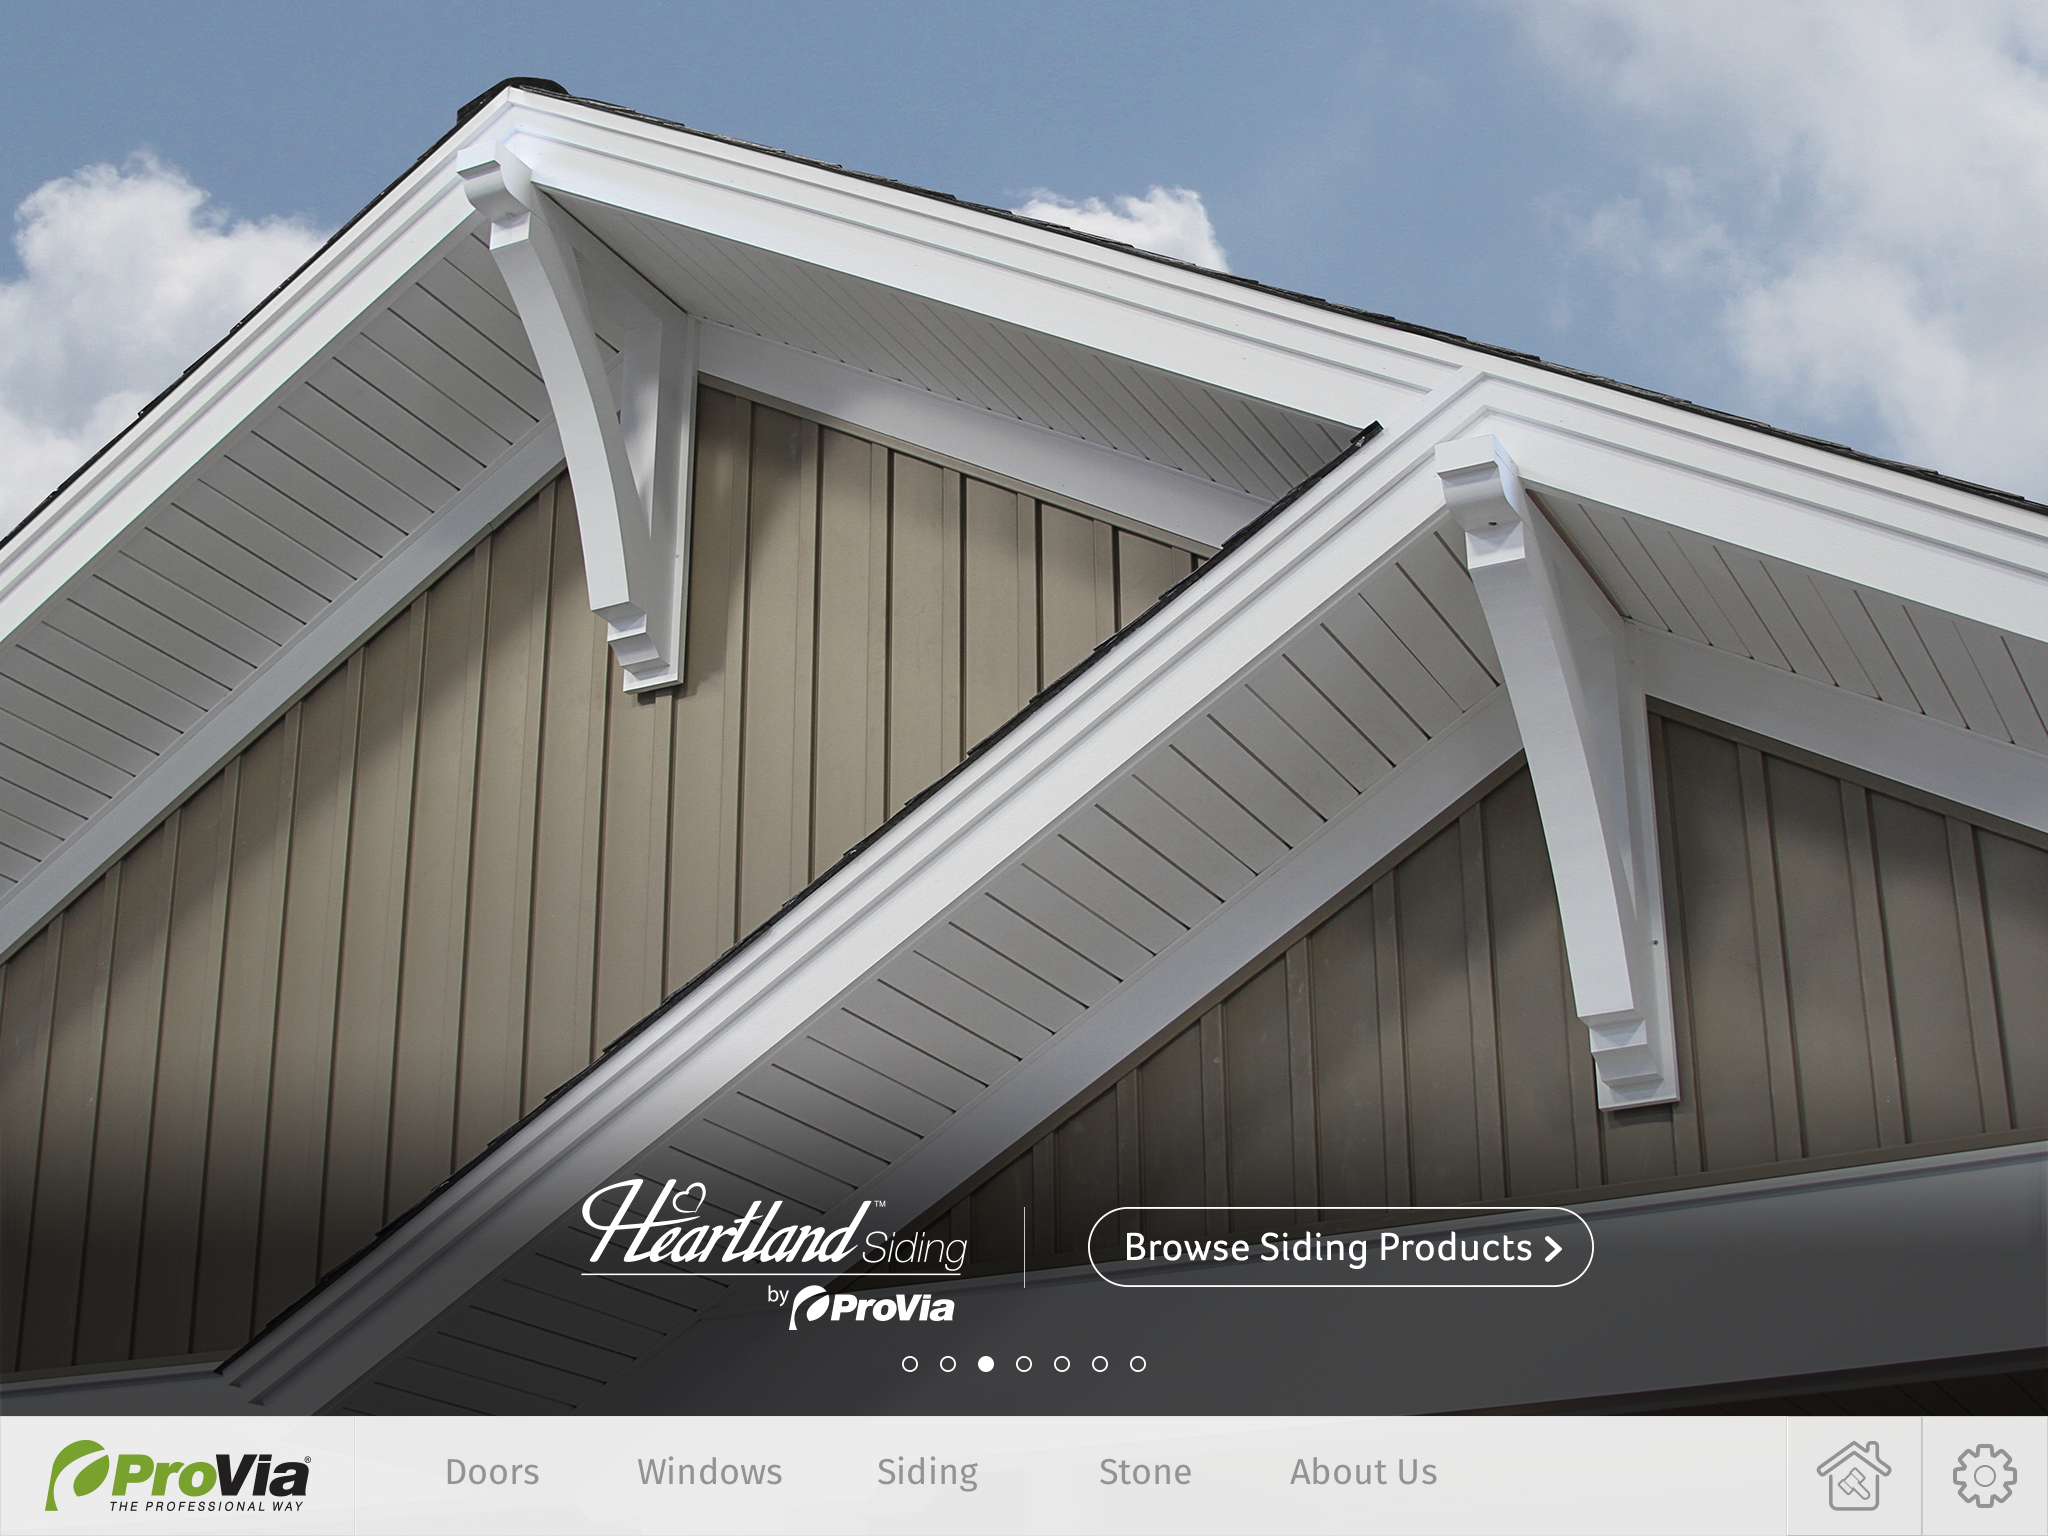 Provia 39 s home exterior design ipad app enables users to for Exterior house remodel app